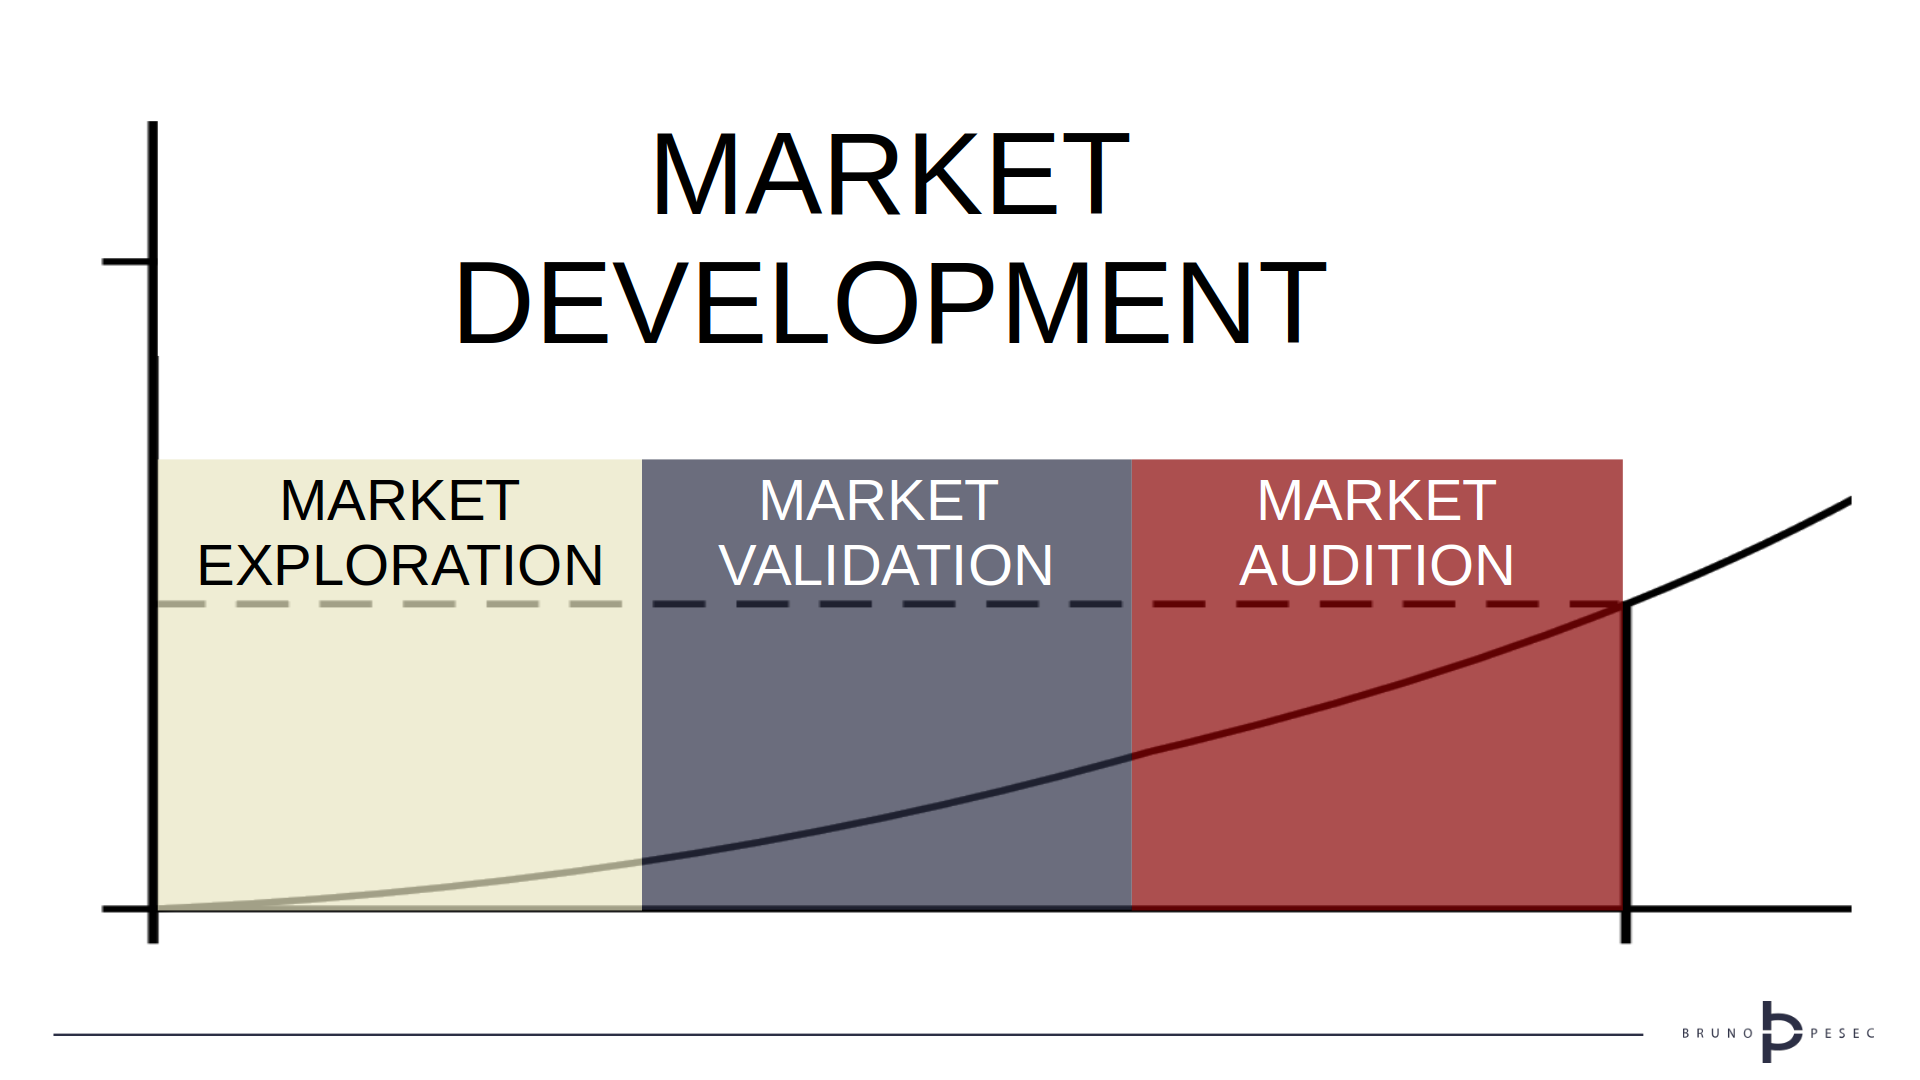 Granular view of market development